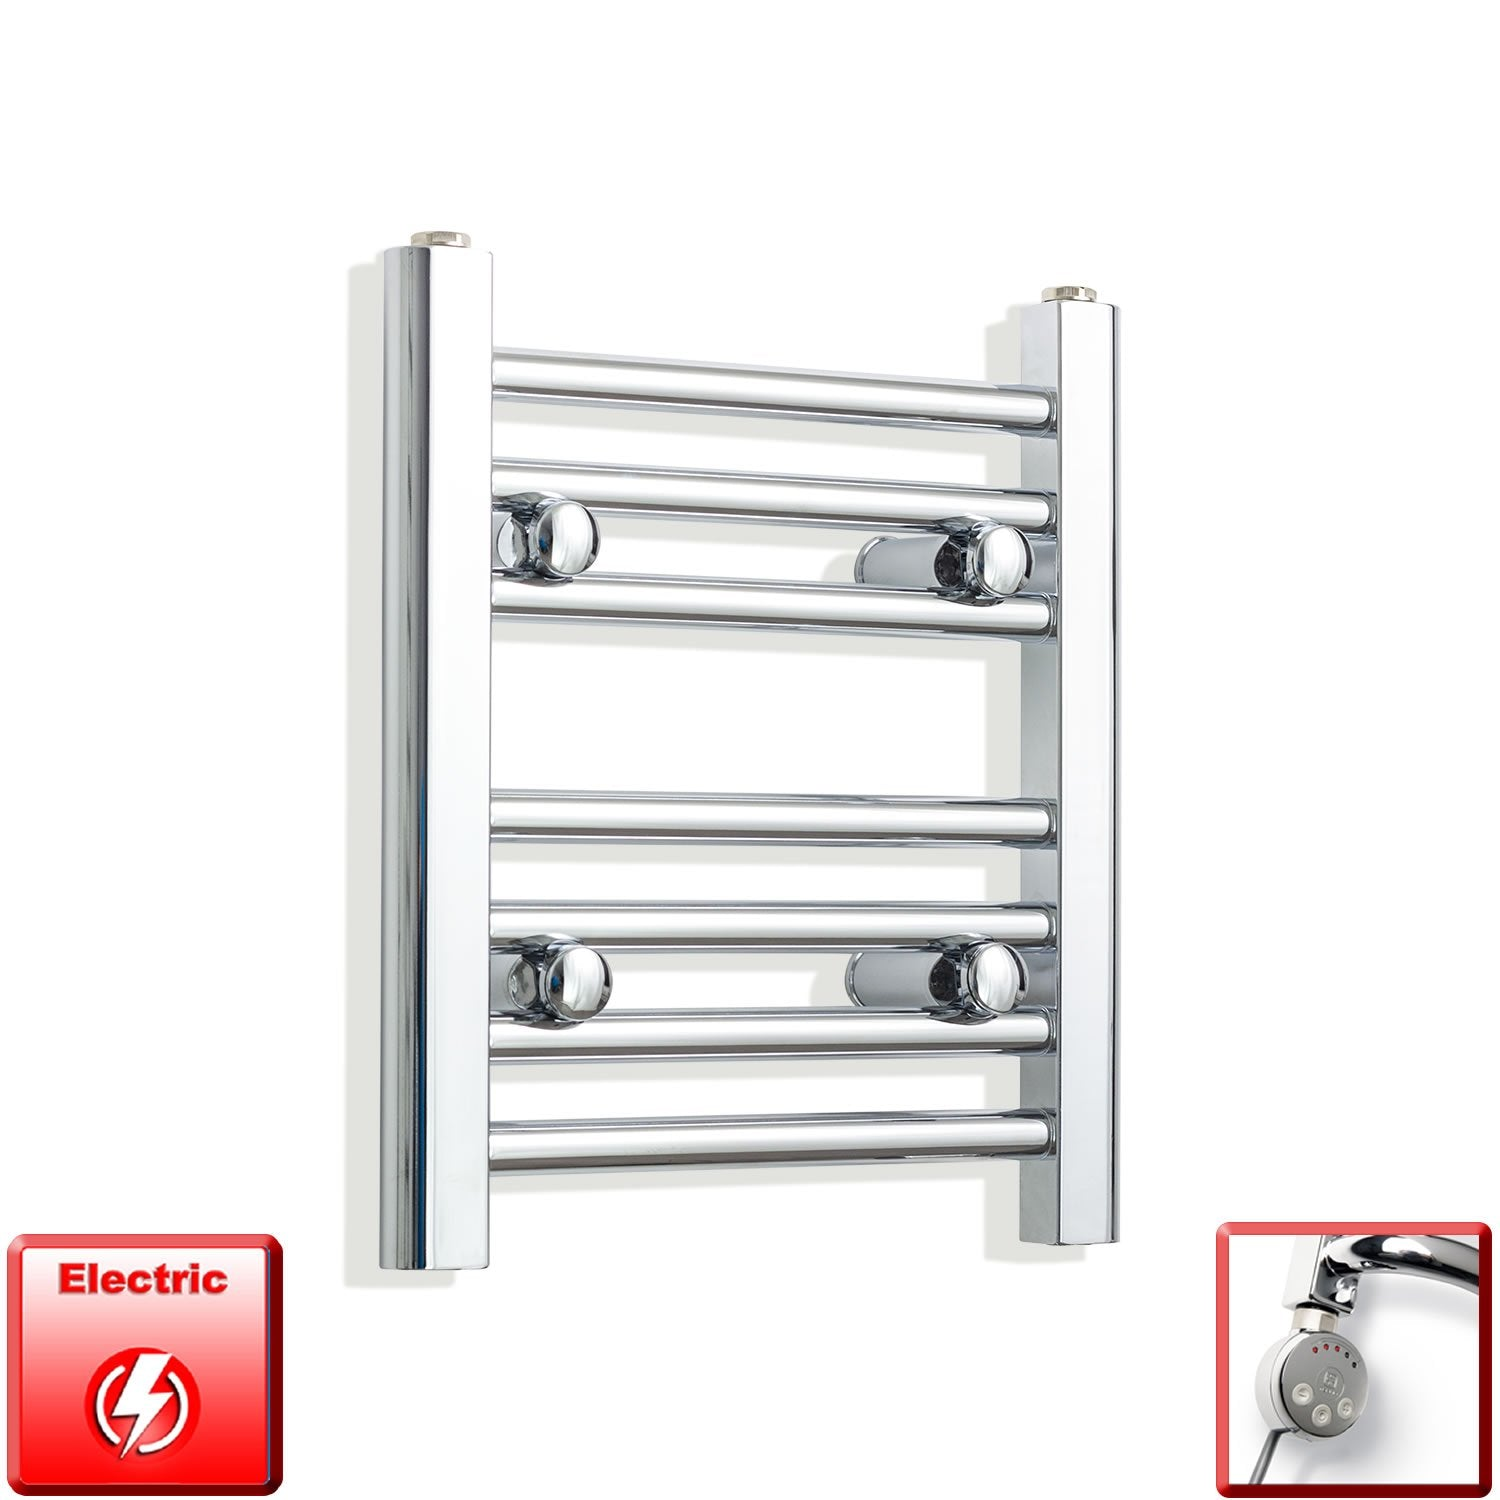 350mm Wide 400mm High Flat Chrome Pre-Filled Electric Heated Towel Rail Radiator HTR,MEG Thermostatic Element